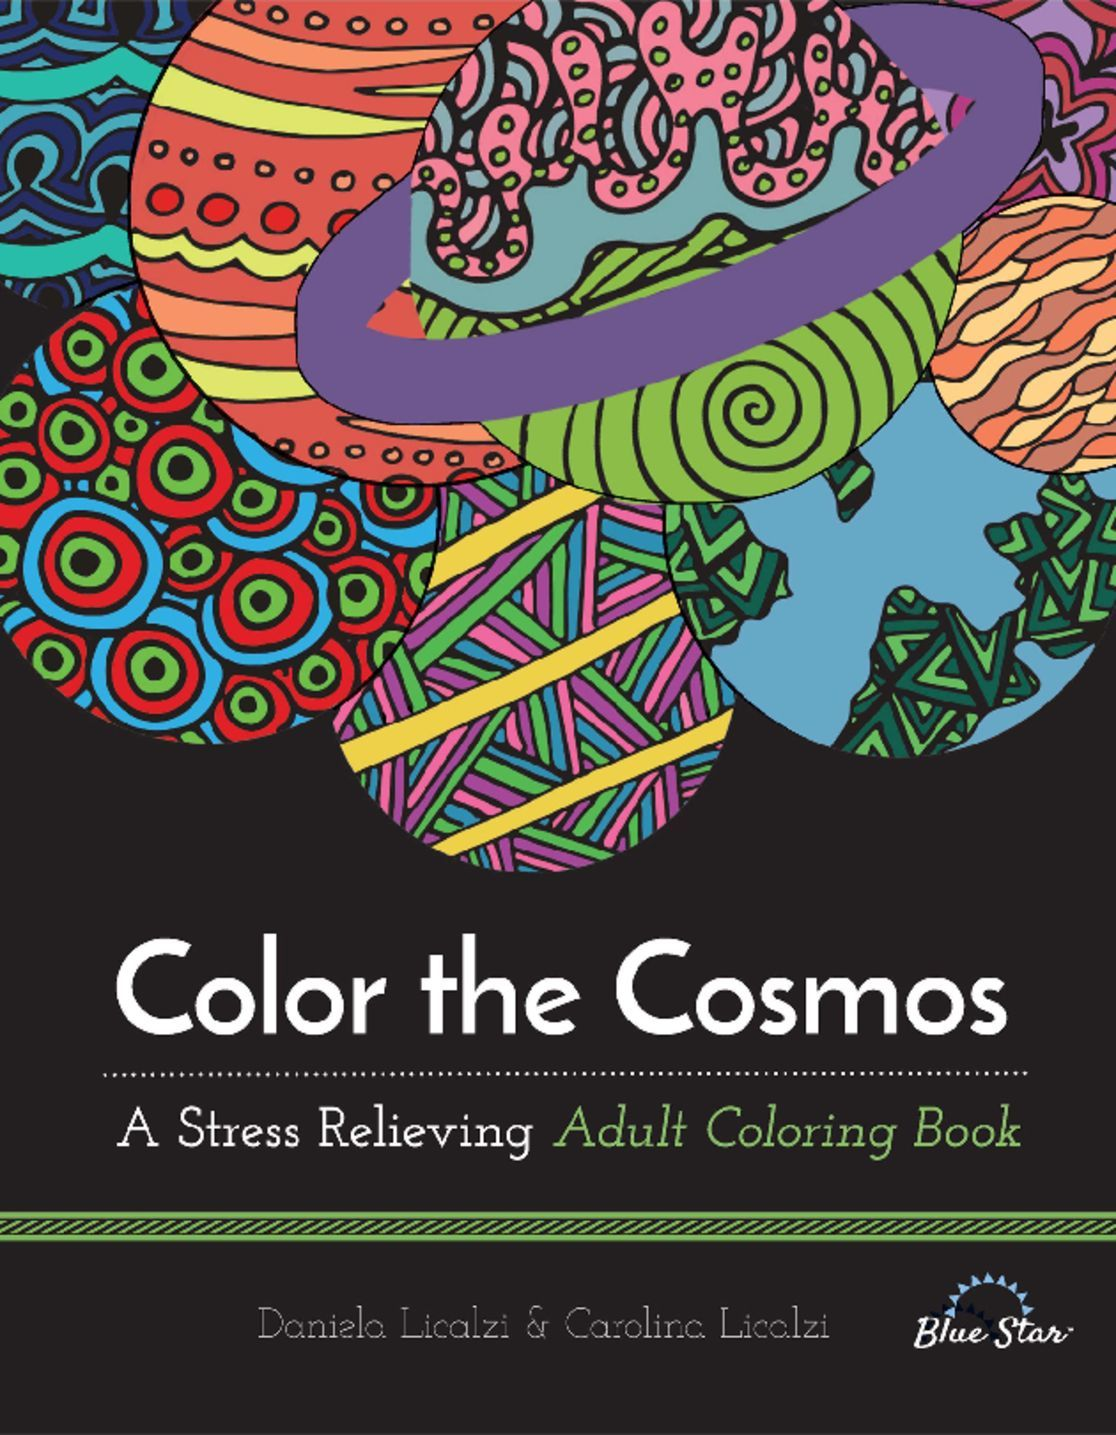 Color the Cosmos A Stress Relieving Adult Coloring Book Digital